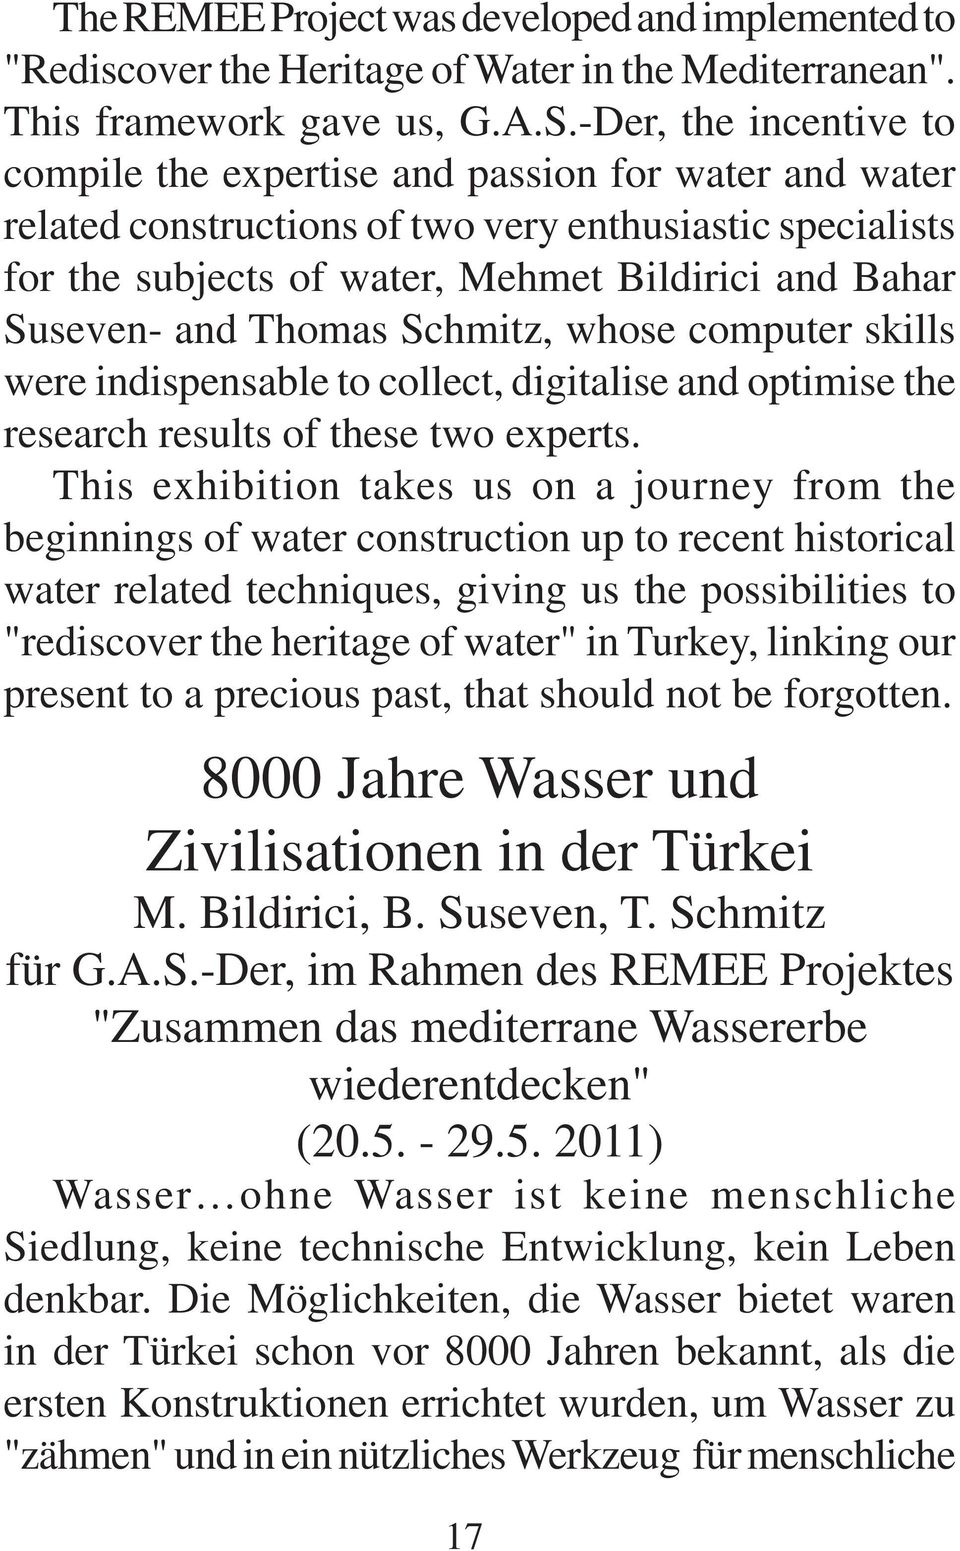 and Thomas Schmitz, whose computer skills were indispensable to collect, digitalise and optimise the research results of these two experts.